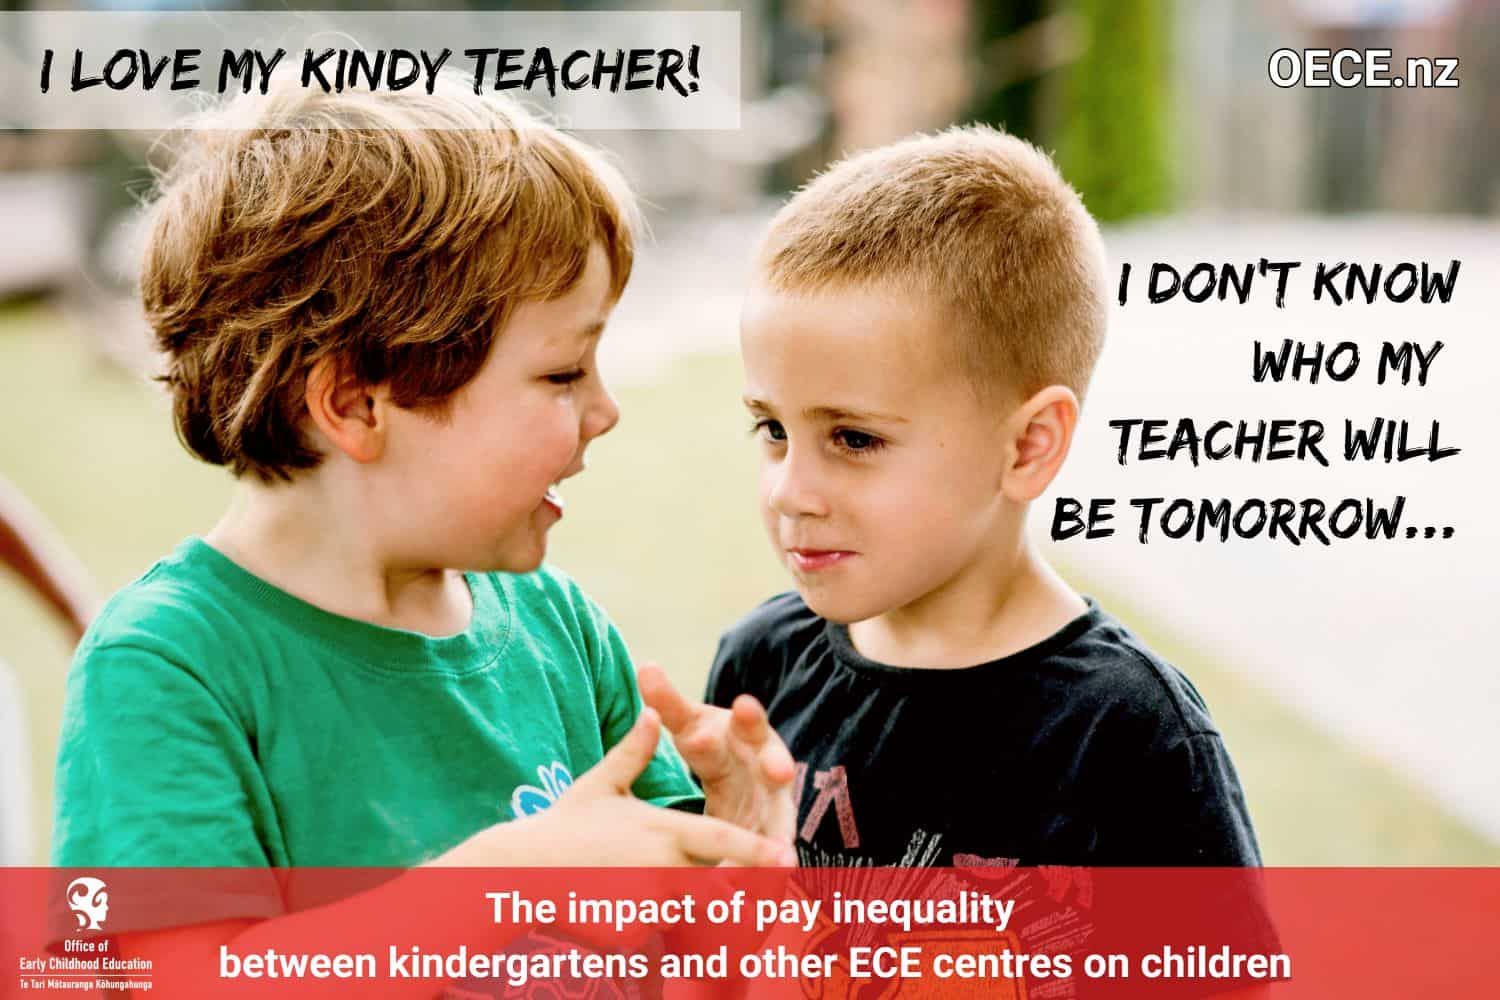 our teacher pay parity poster - staff retention, wages, equity